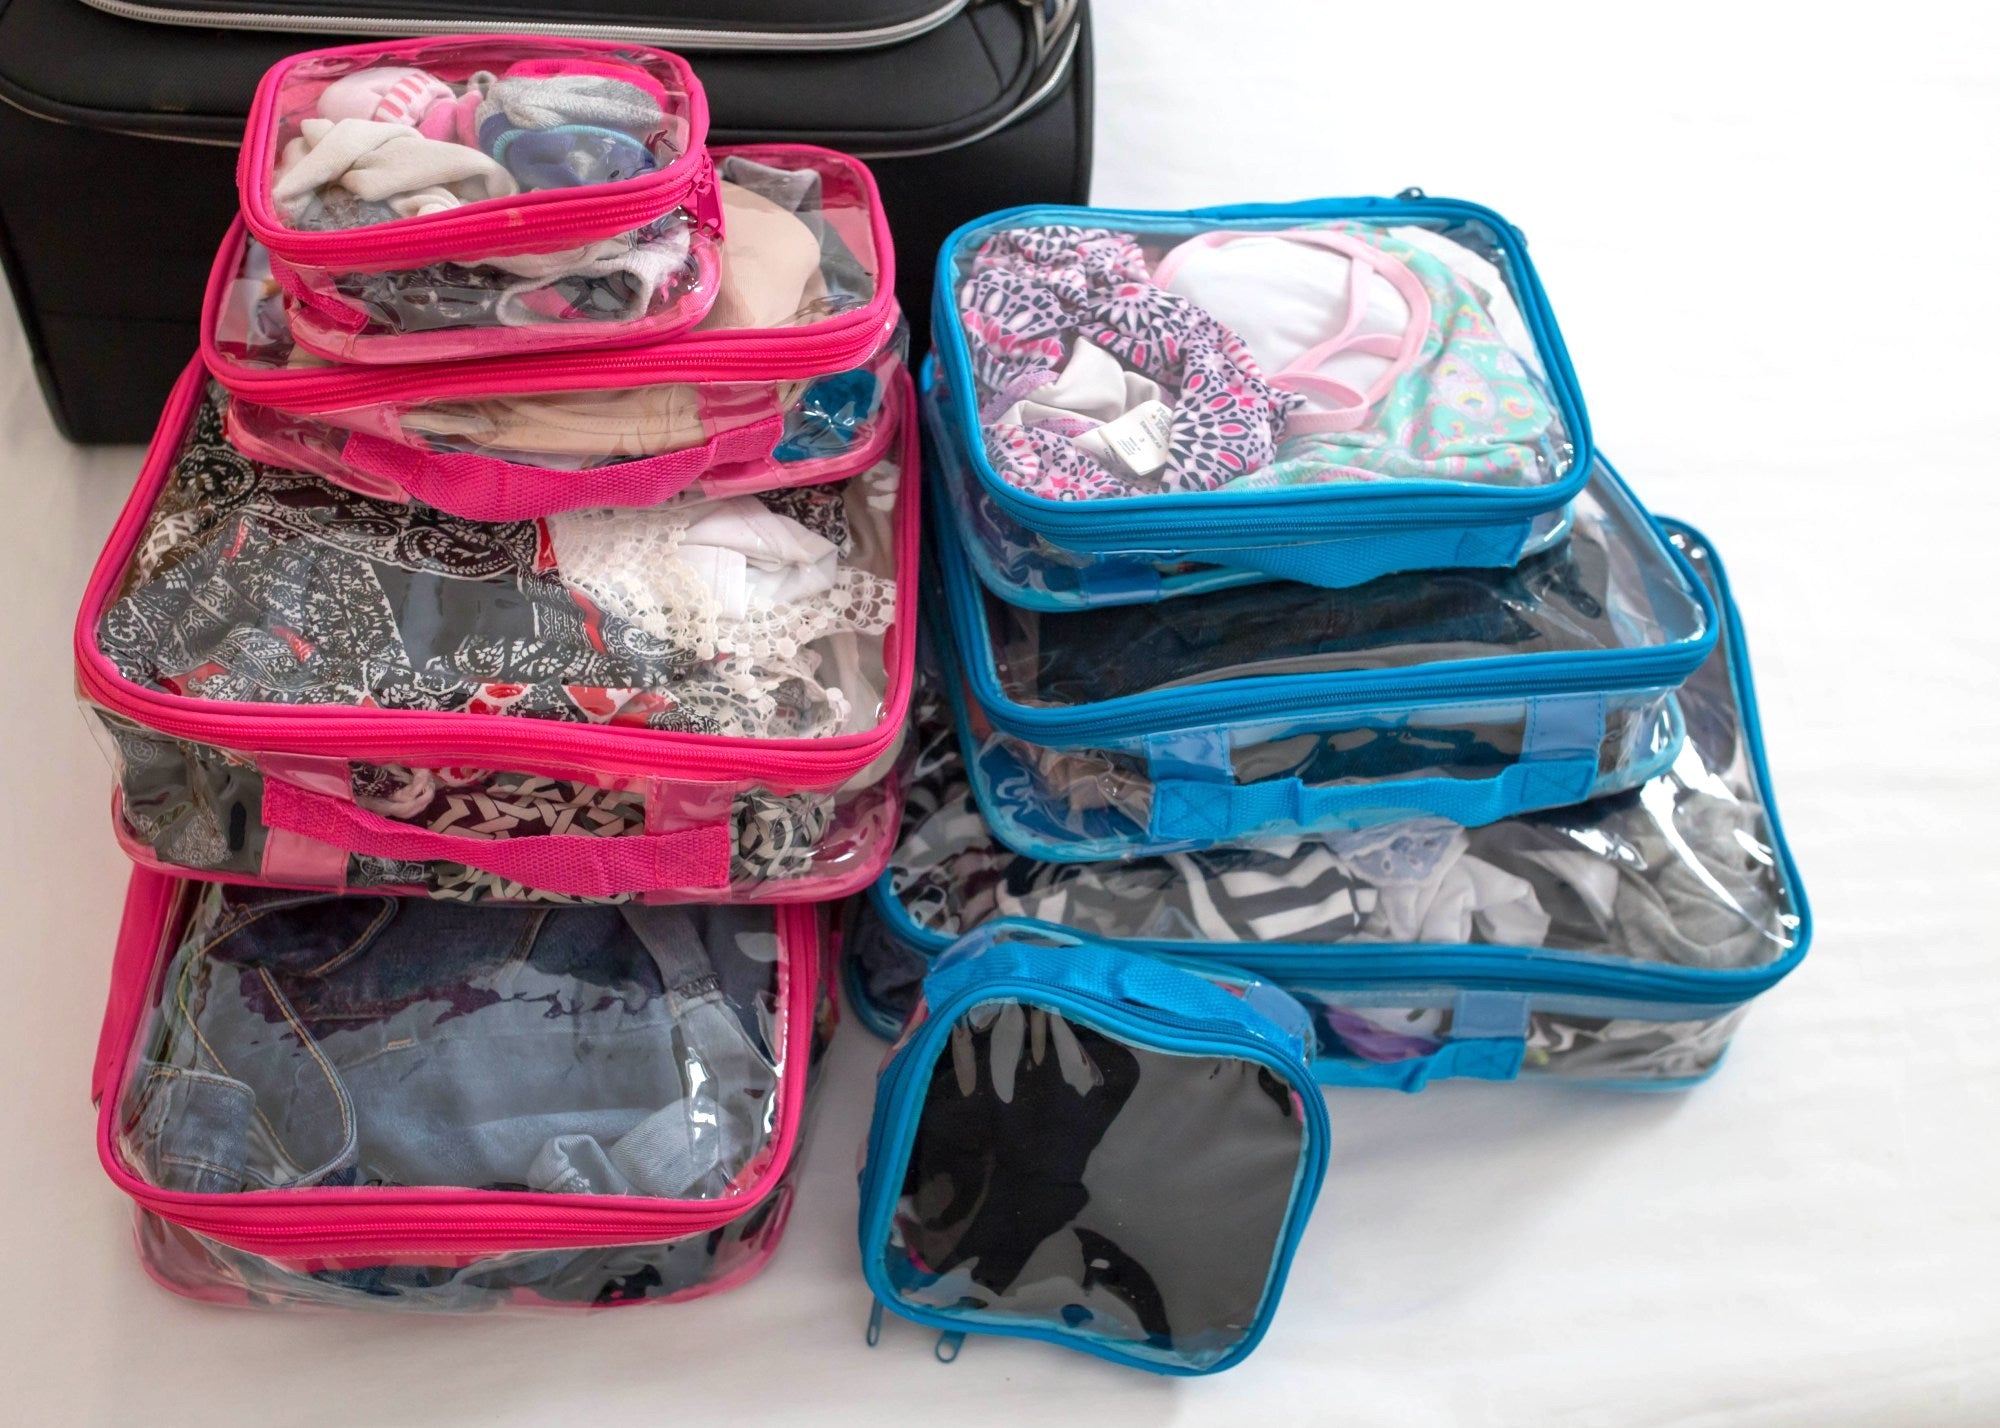 Complete Bundle for checked suitcase organization